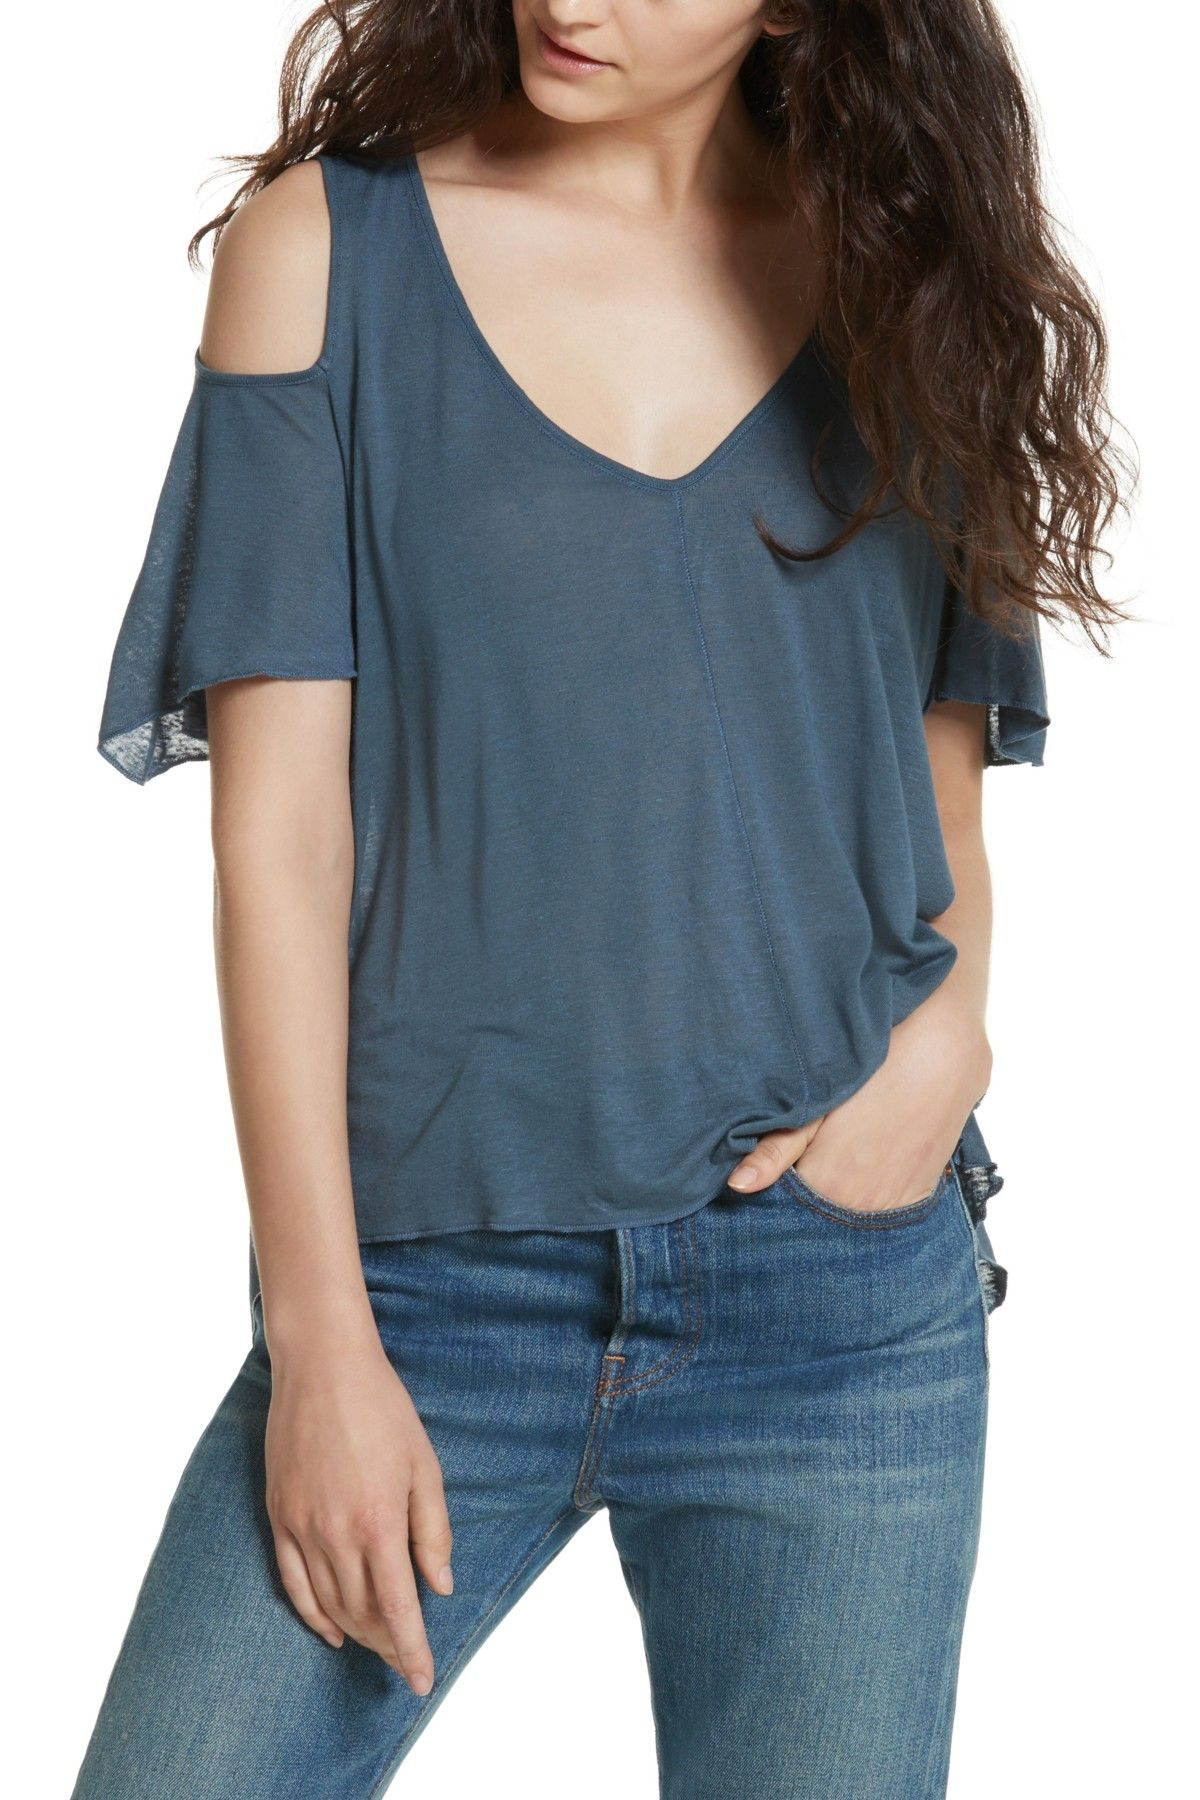 699f94653a4e3 Bittersweet Cold Shoulder Shirt by Free People on  nordstrom rack Free  People